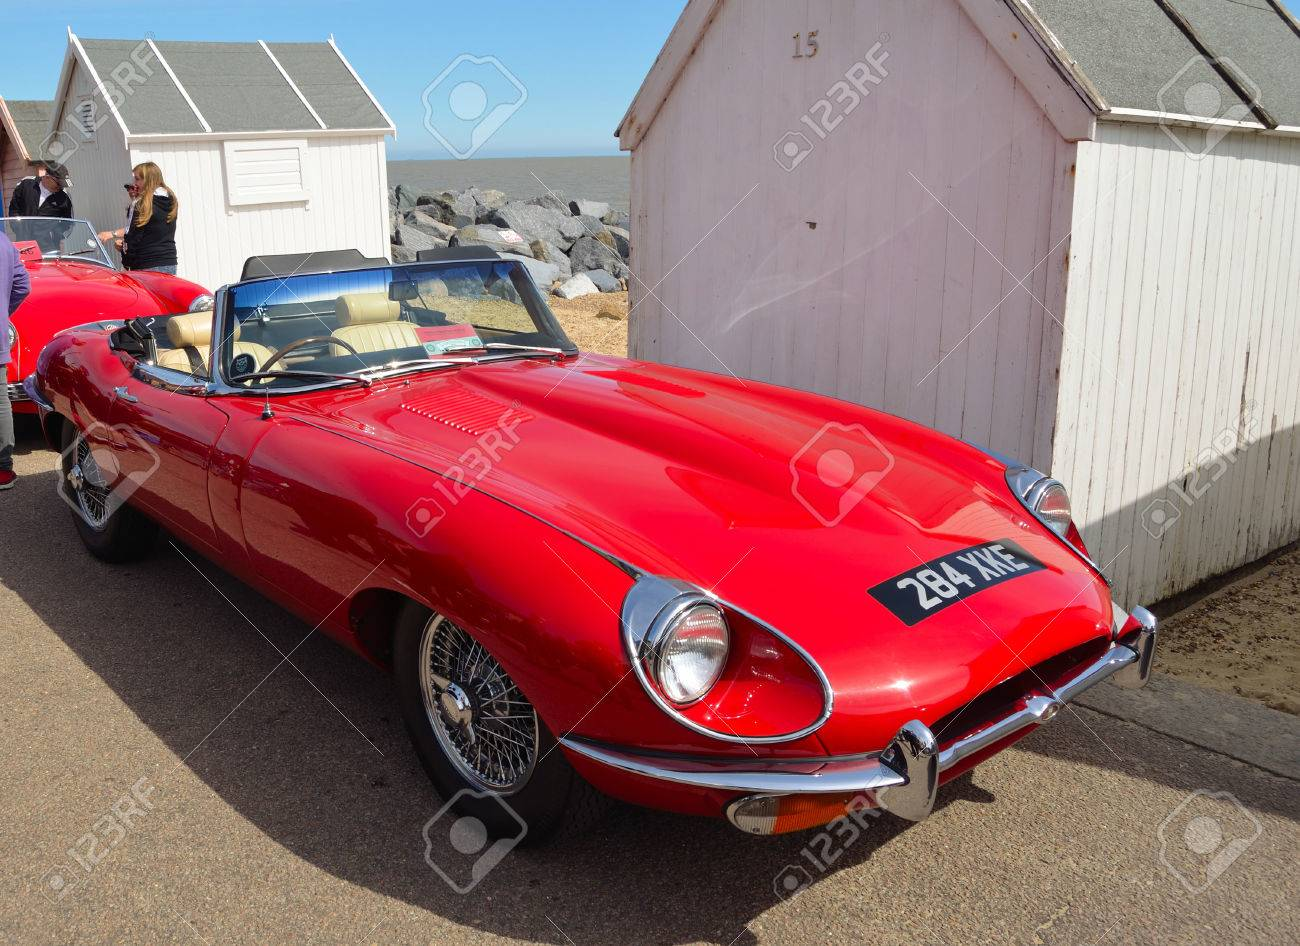 Classic Red E Type Jaguar Open Top Sports Car Parked On Seafront Stock Photo Picture And Royalty Free Image Image 68767100